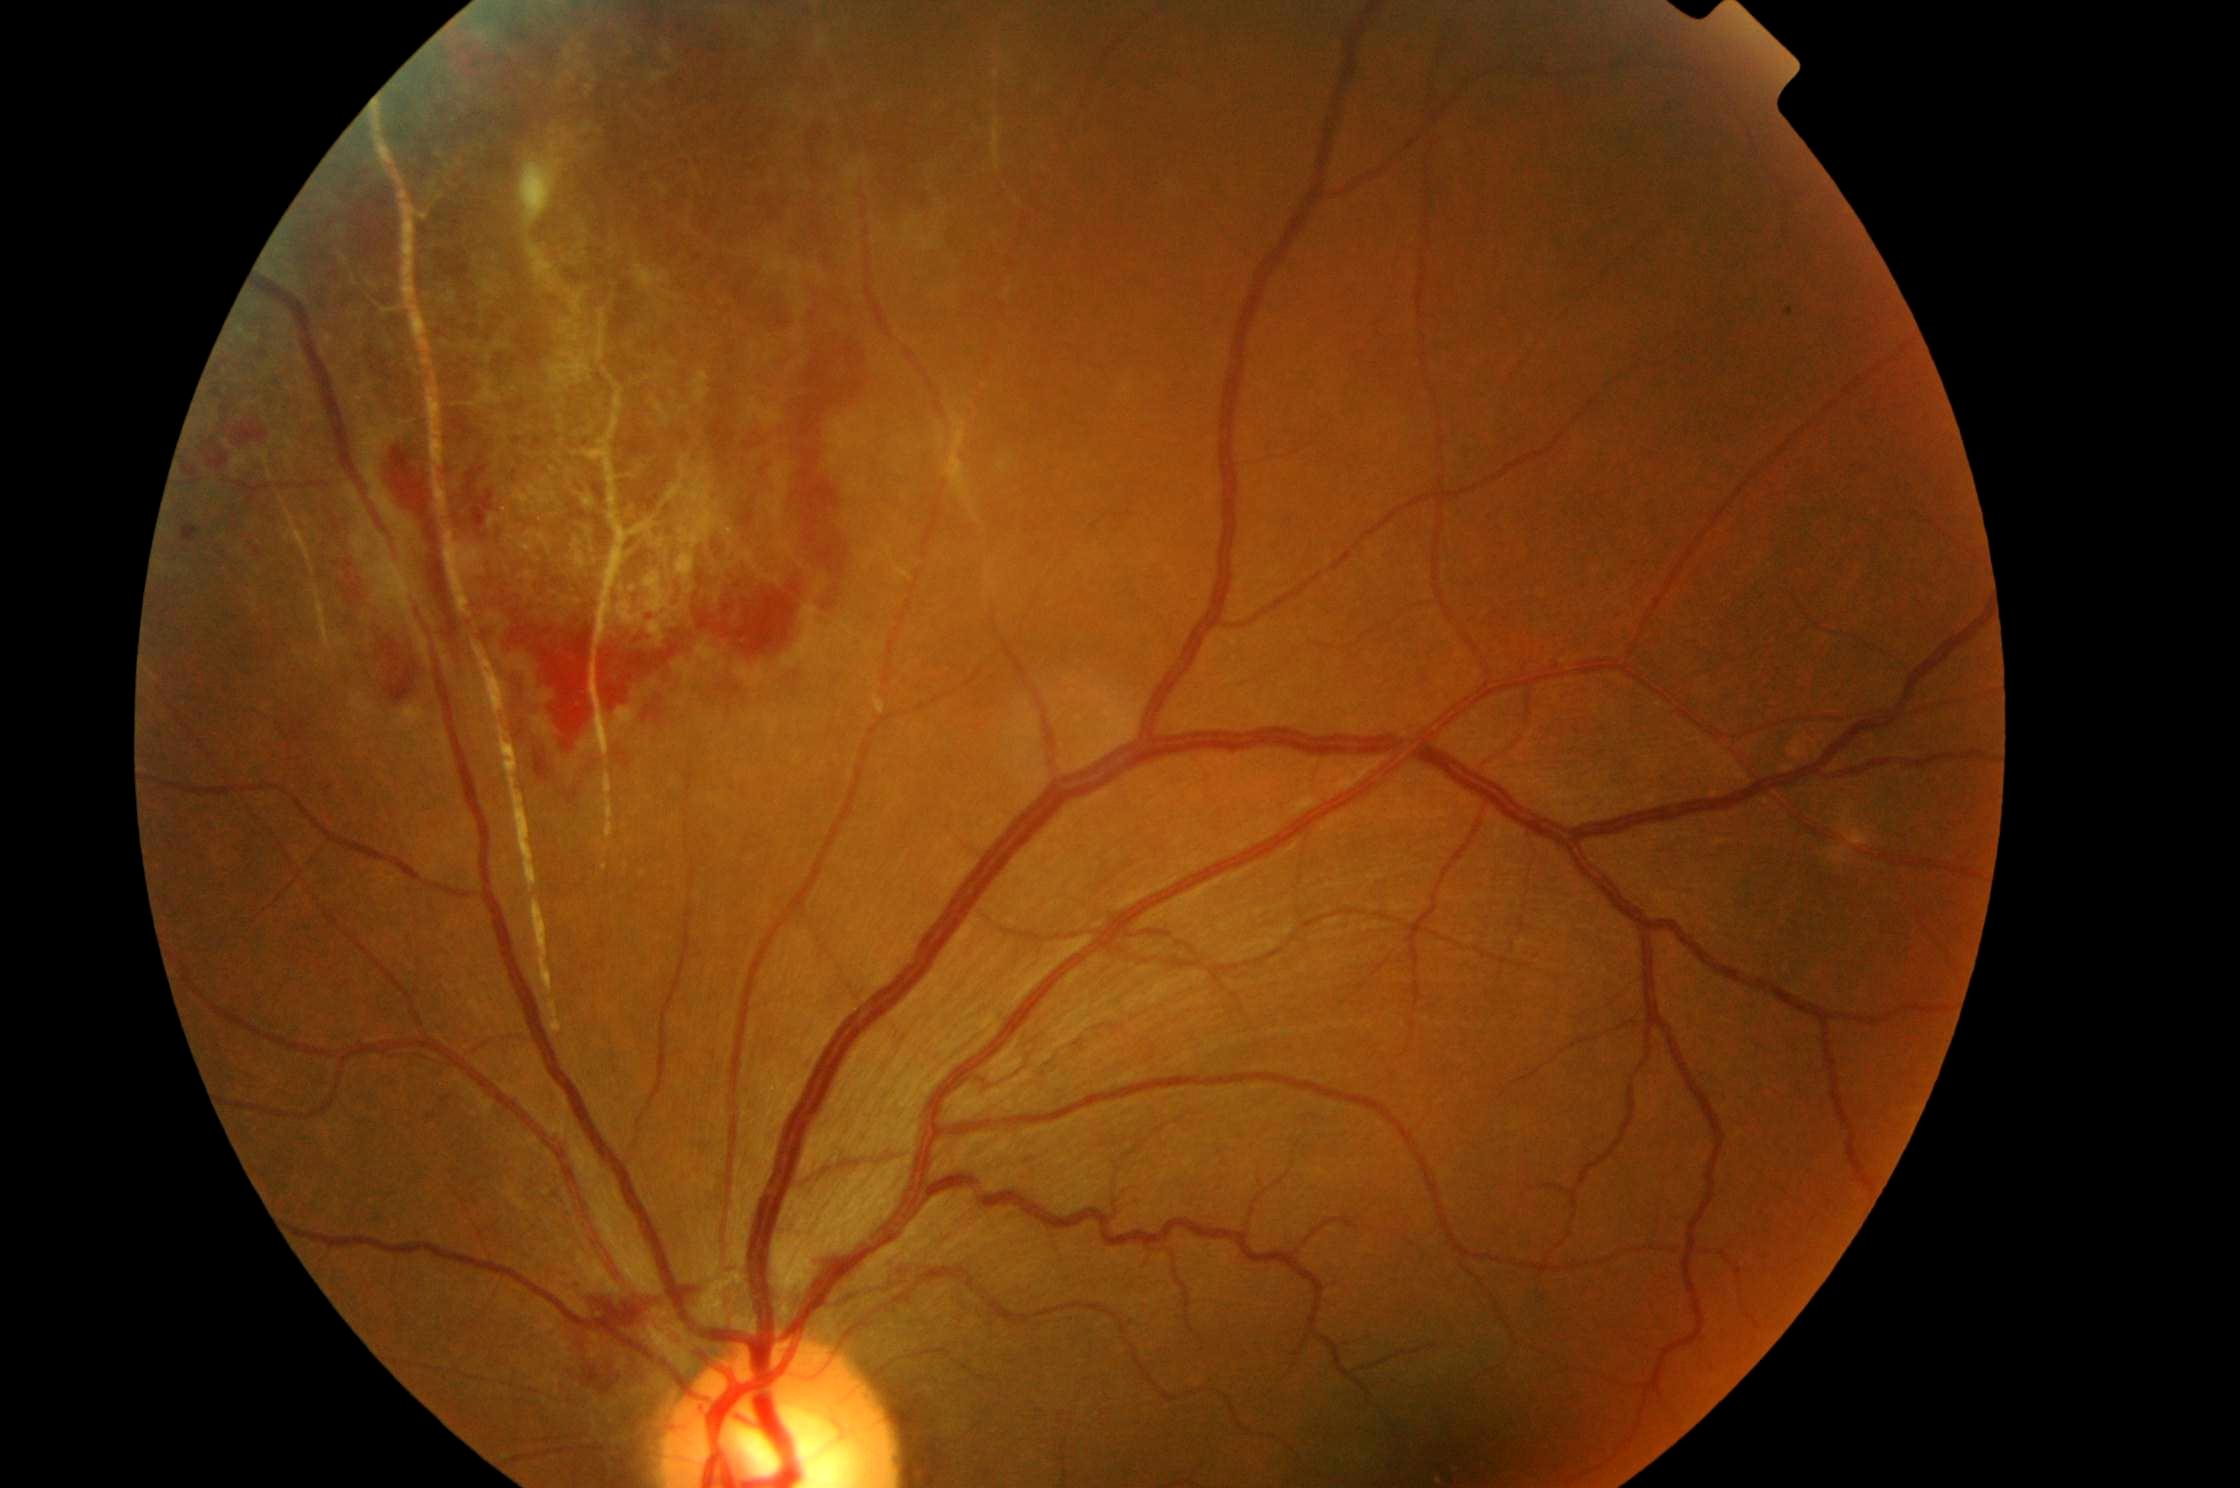 uveitis updated3